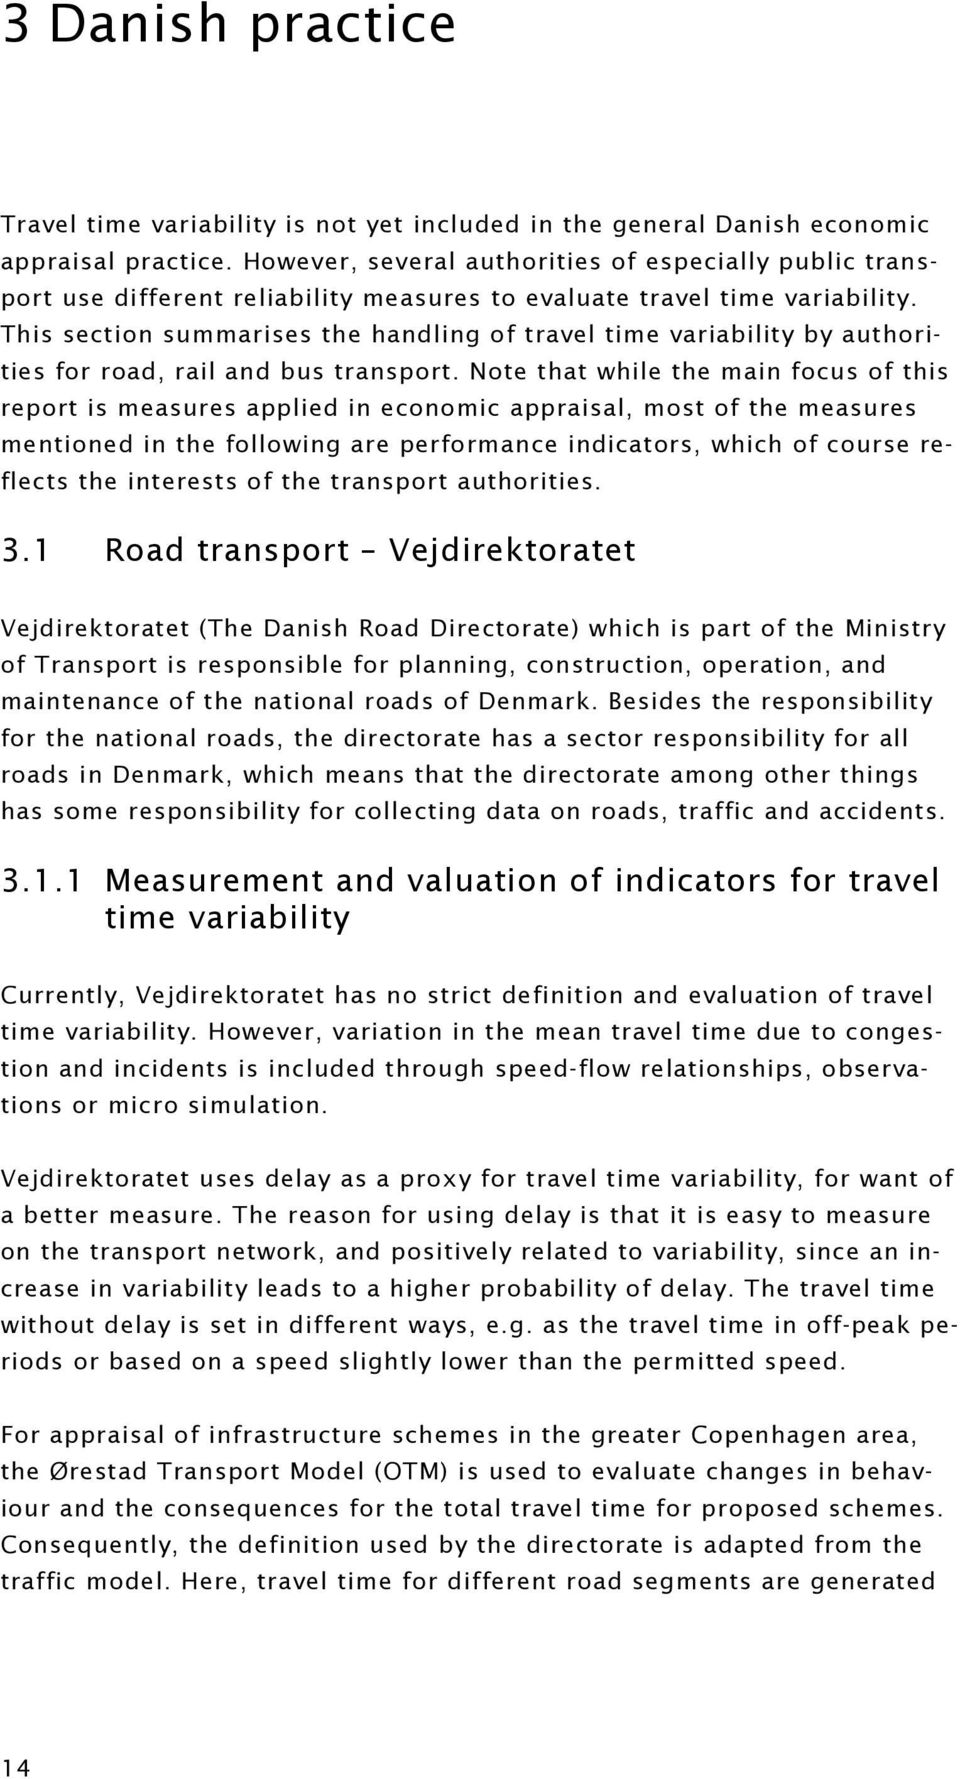 This section summarises the handling of travel time variability by authorities for road, rail and bus transport.